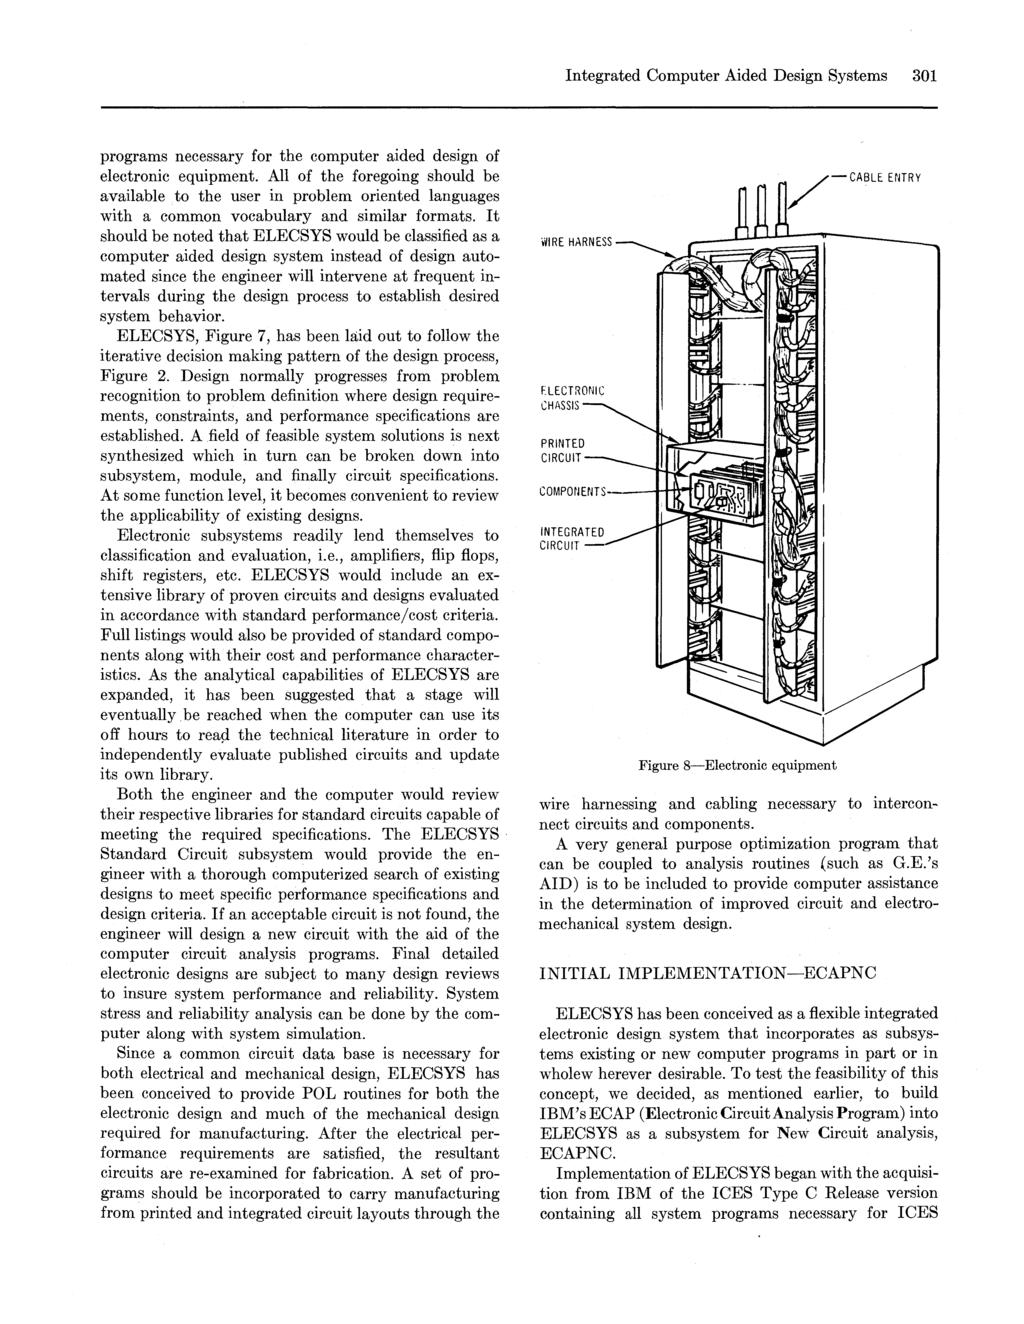 hight resolution of ntegrated computer aided design systems 301 programs necessary for the computer aided design of electronic equipment